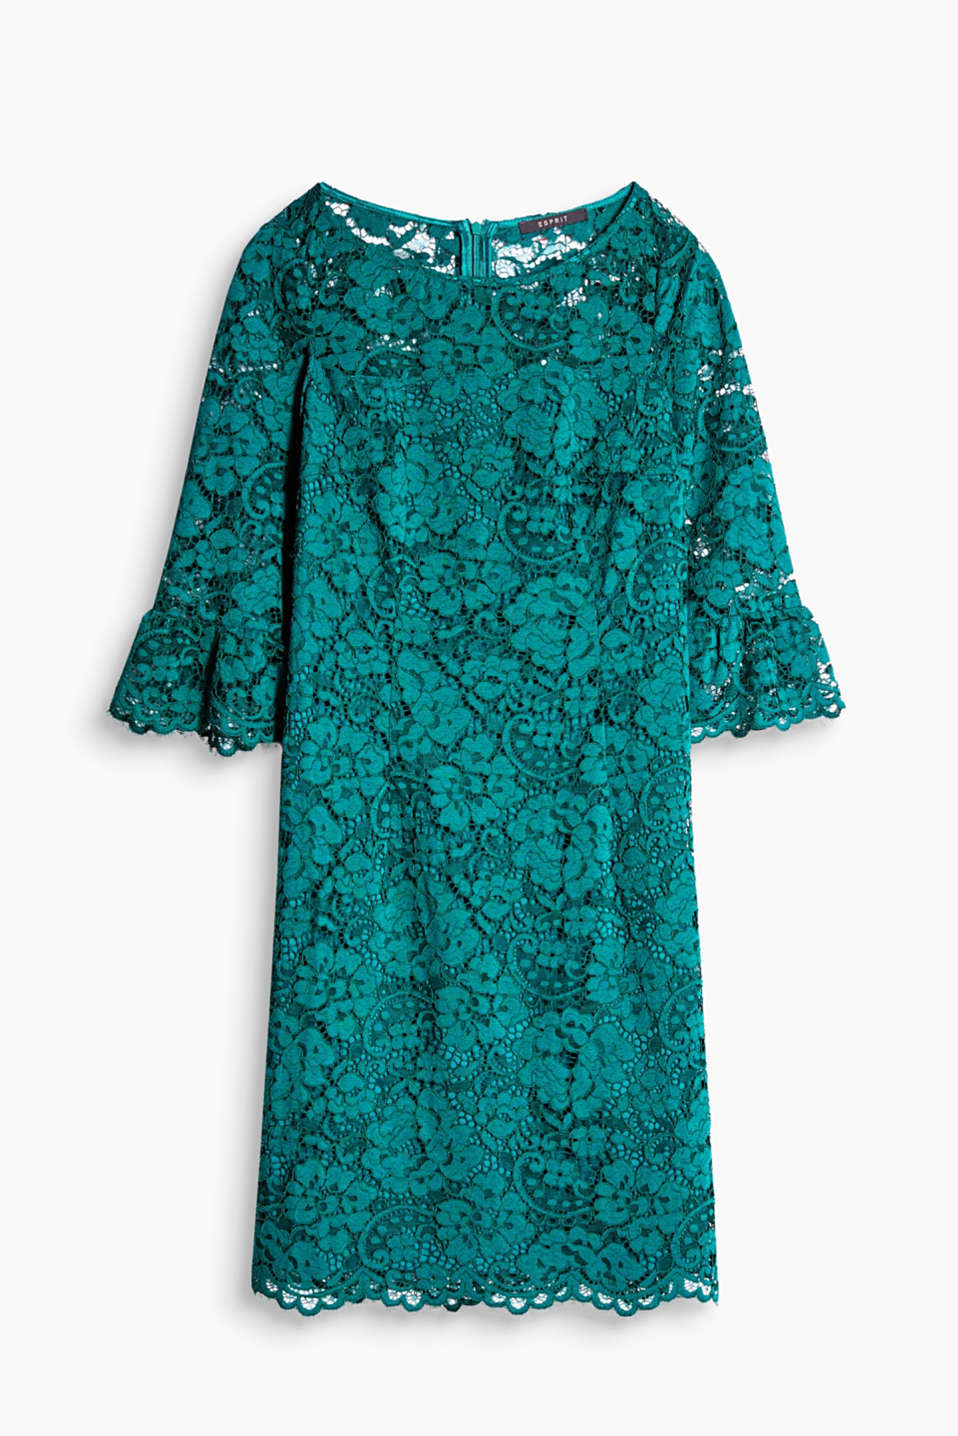 This ultra-feminine dress enchants with elegant floral lace and three-quarter length trumpet sleeves.